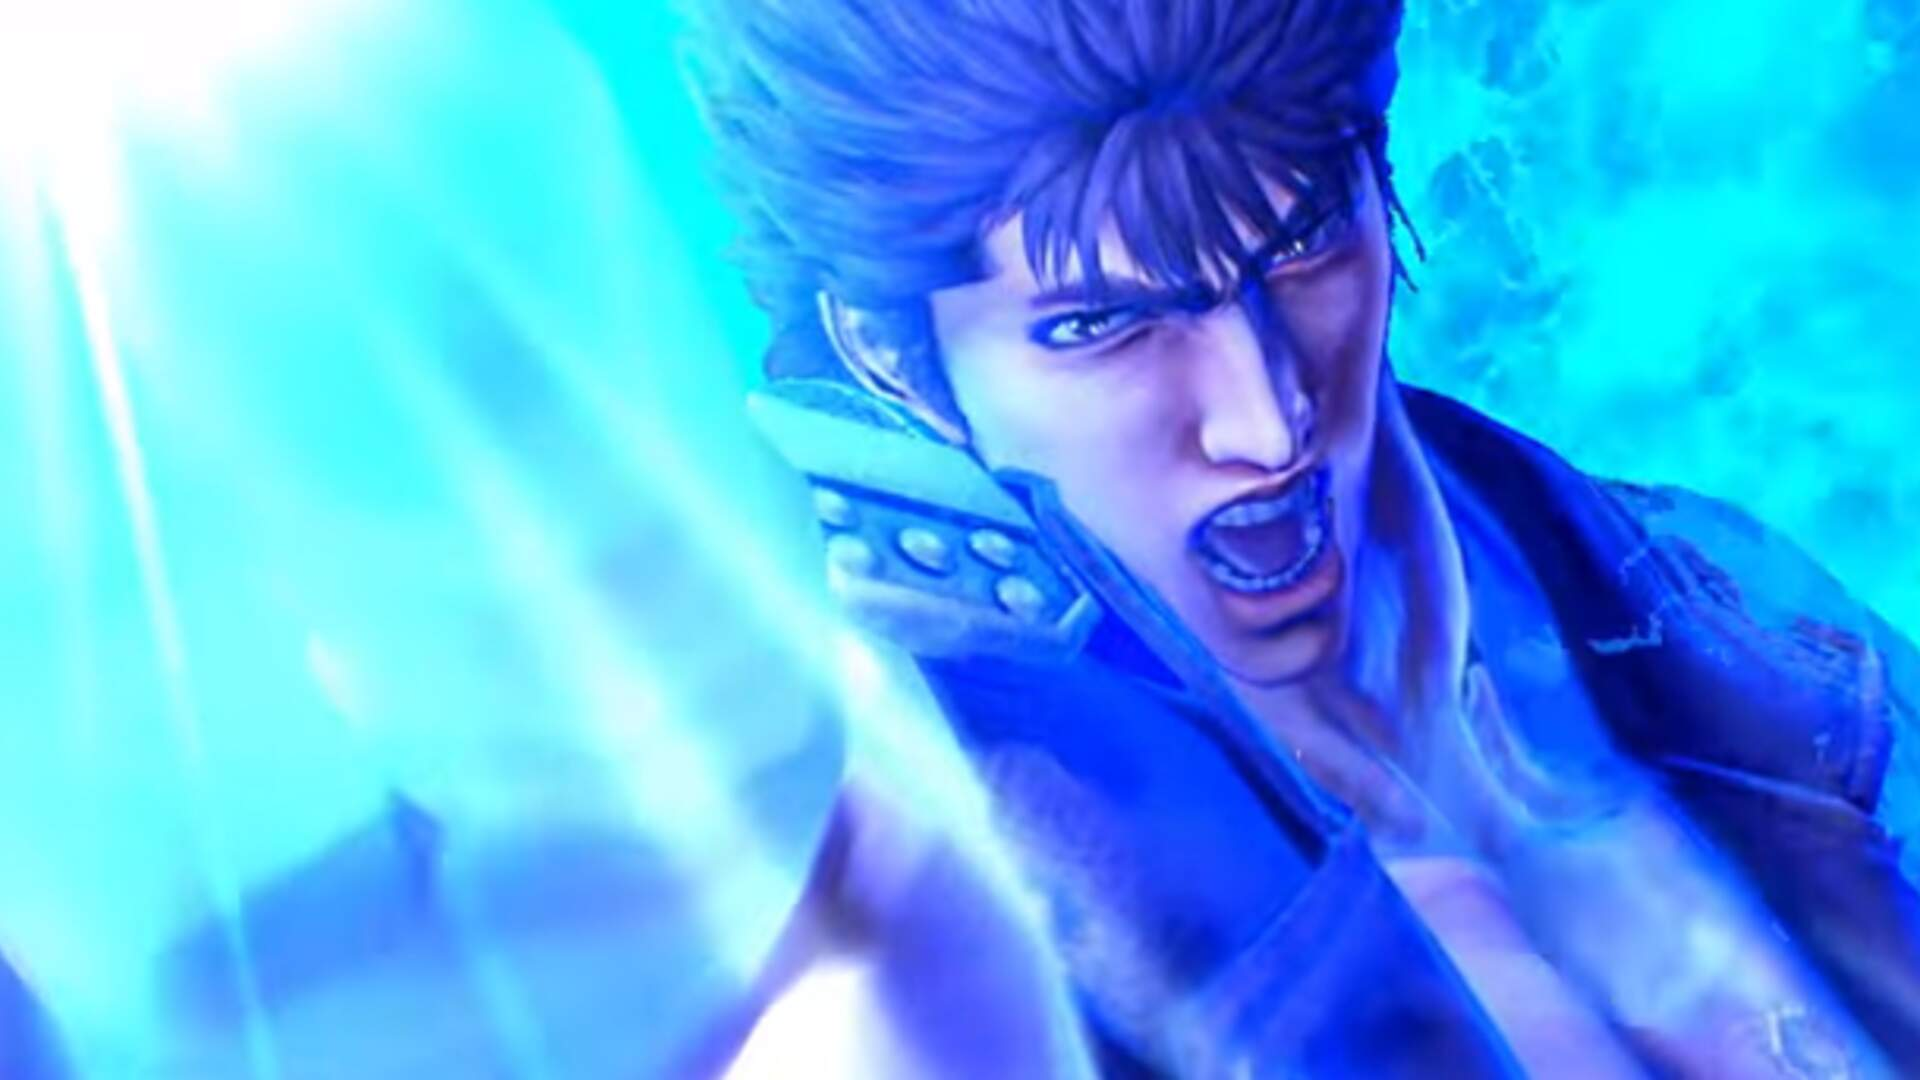 Yakuza Studio Announces Fist of The North Star Game, New Yakuza Protagonist